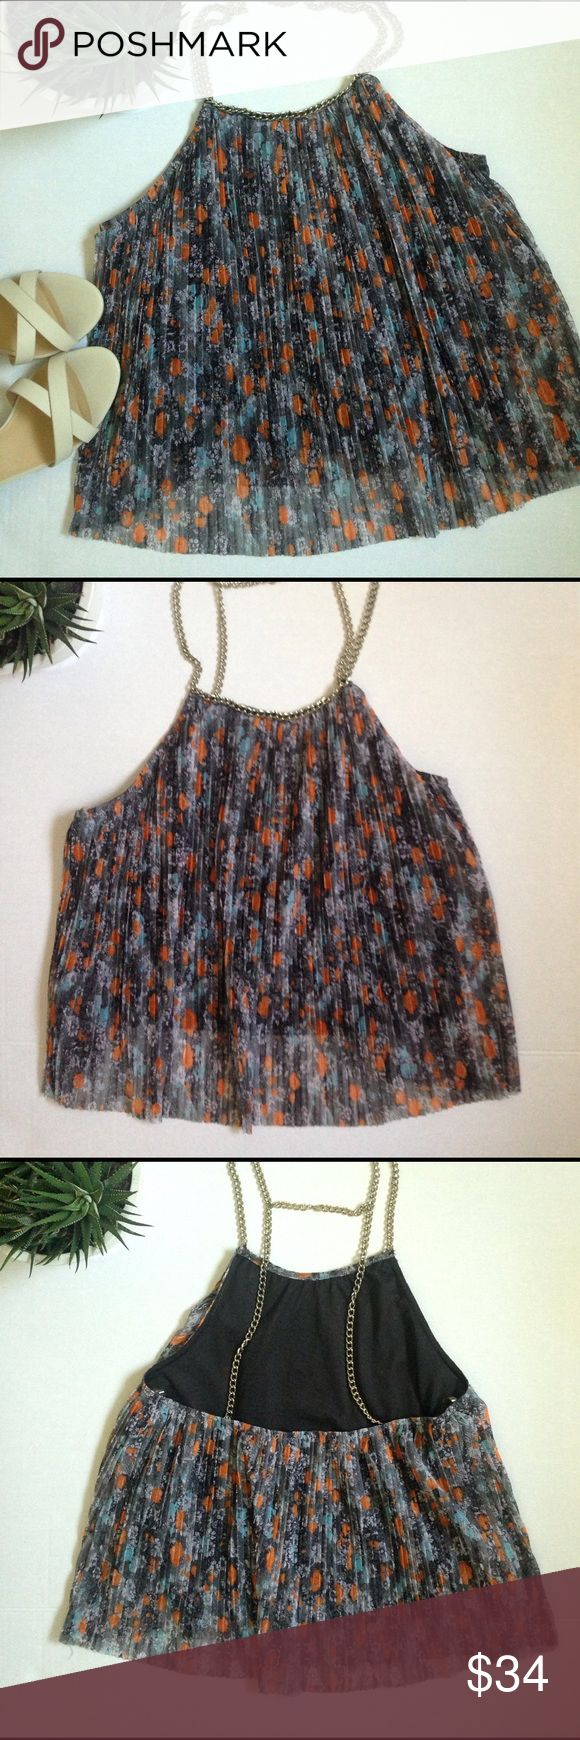 Foreign Exchange sleeveless crop top Foreign Exchange sleeveless crop top with chain and pleated details. Foreign Exchange Tops Crop Tops